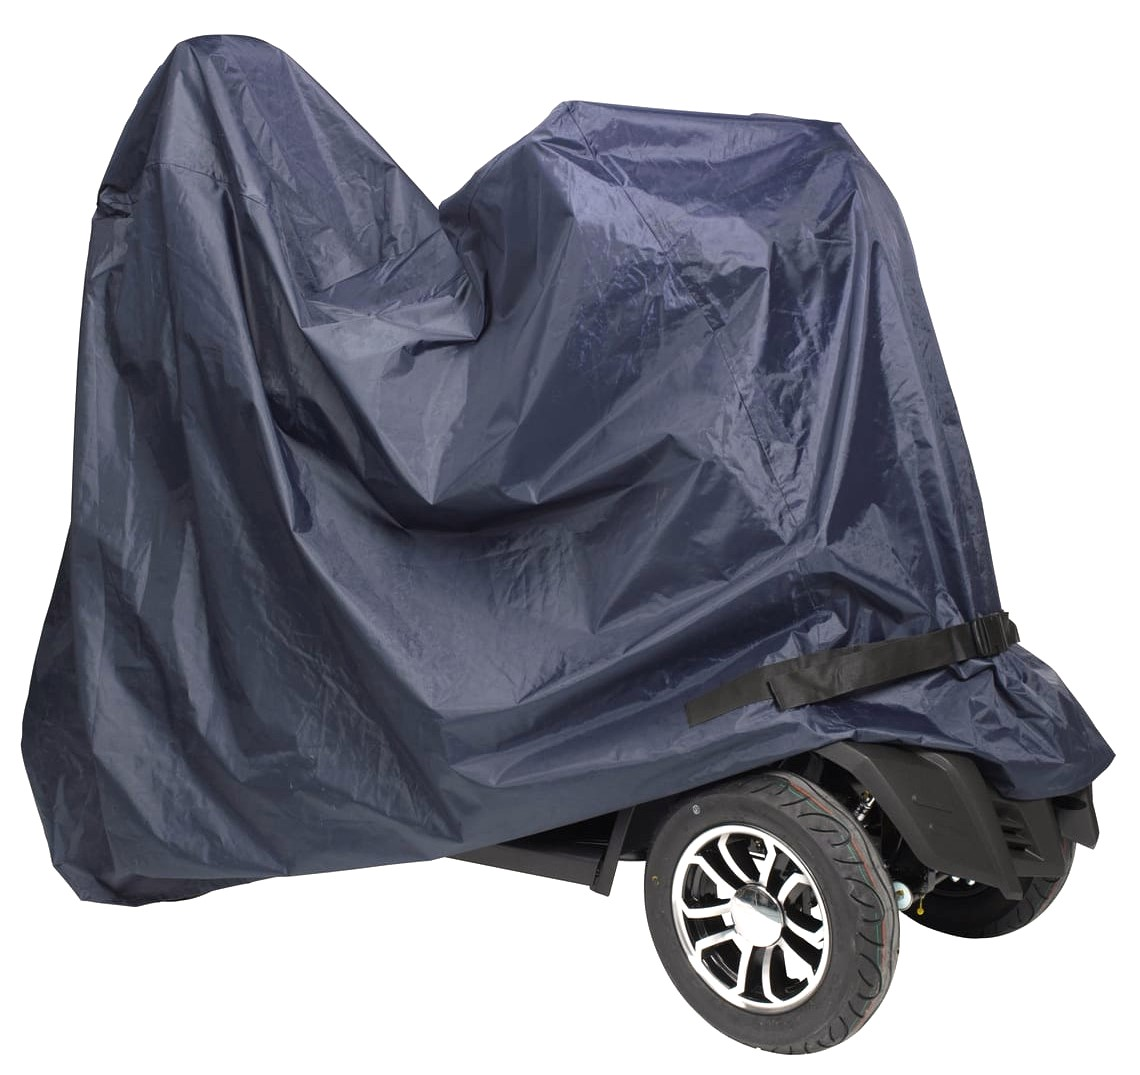 Waterproof scooter cover